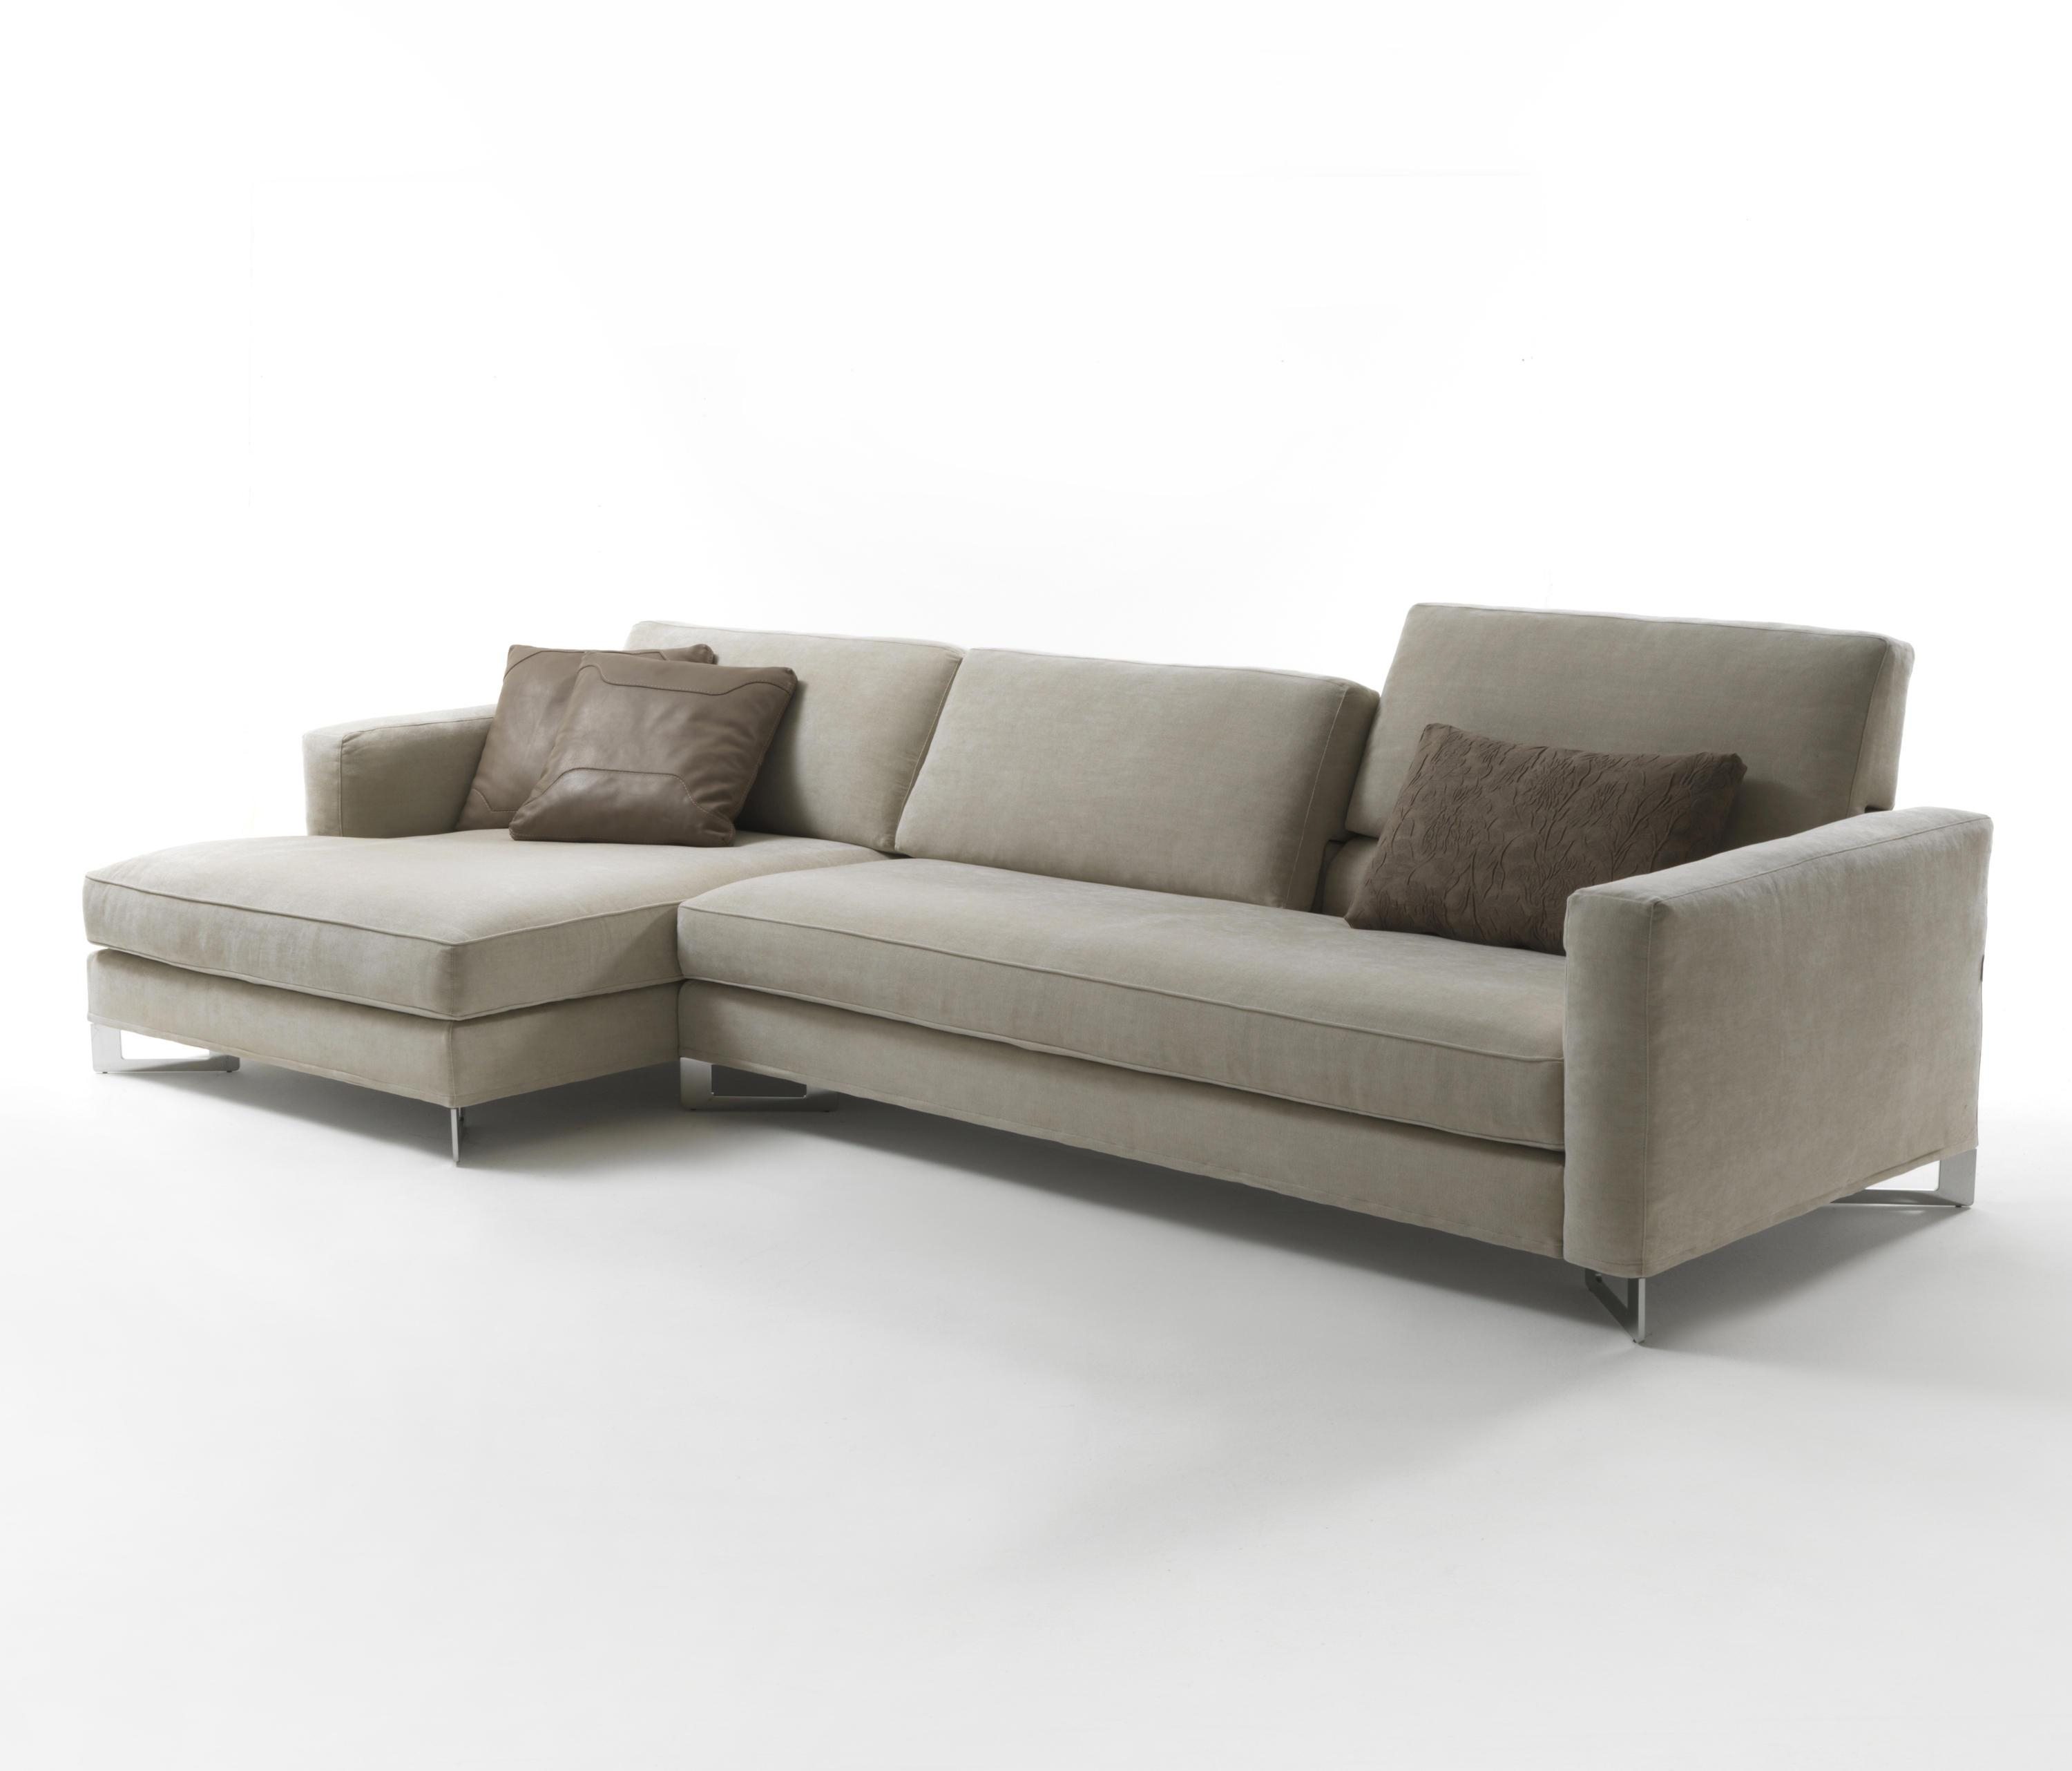 Davis Out – Sofas From Frigerio | Architonic In Davis Sofas (Image 6 of 20)